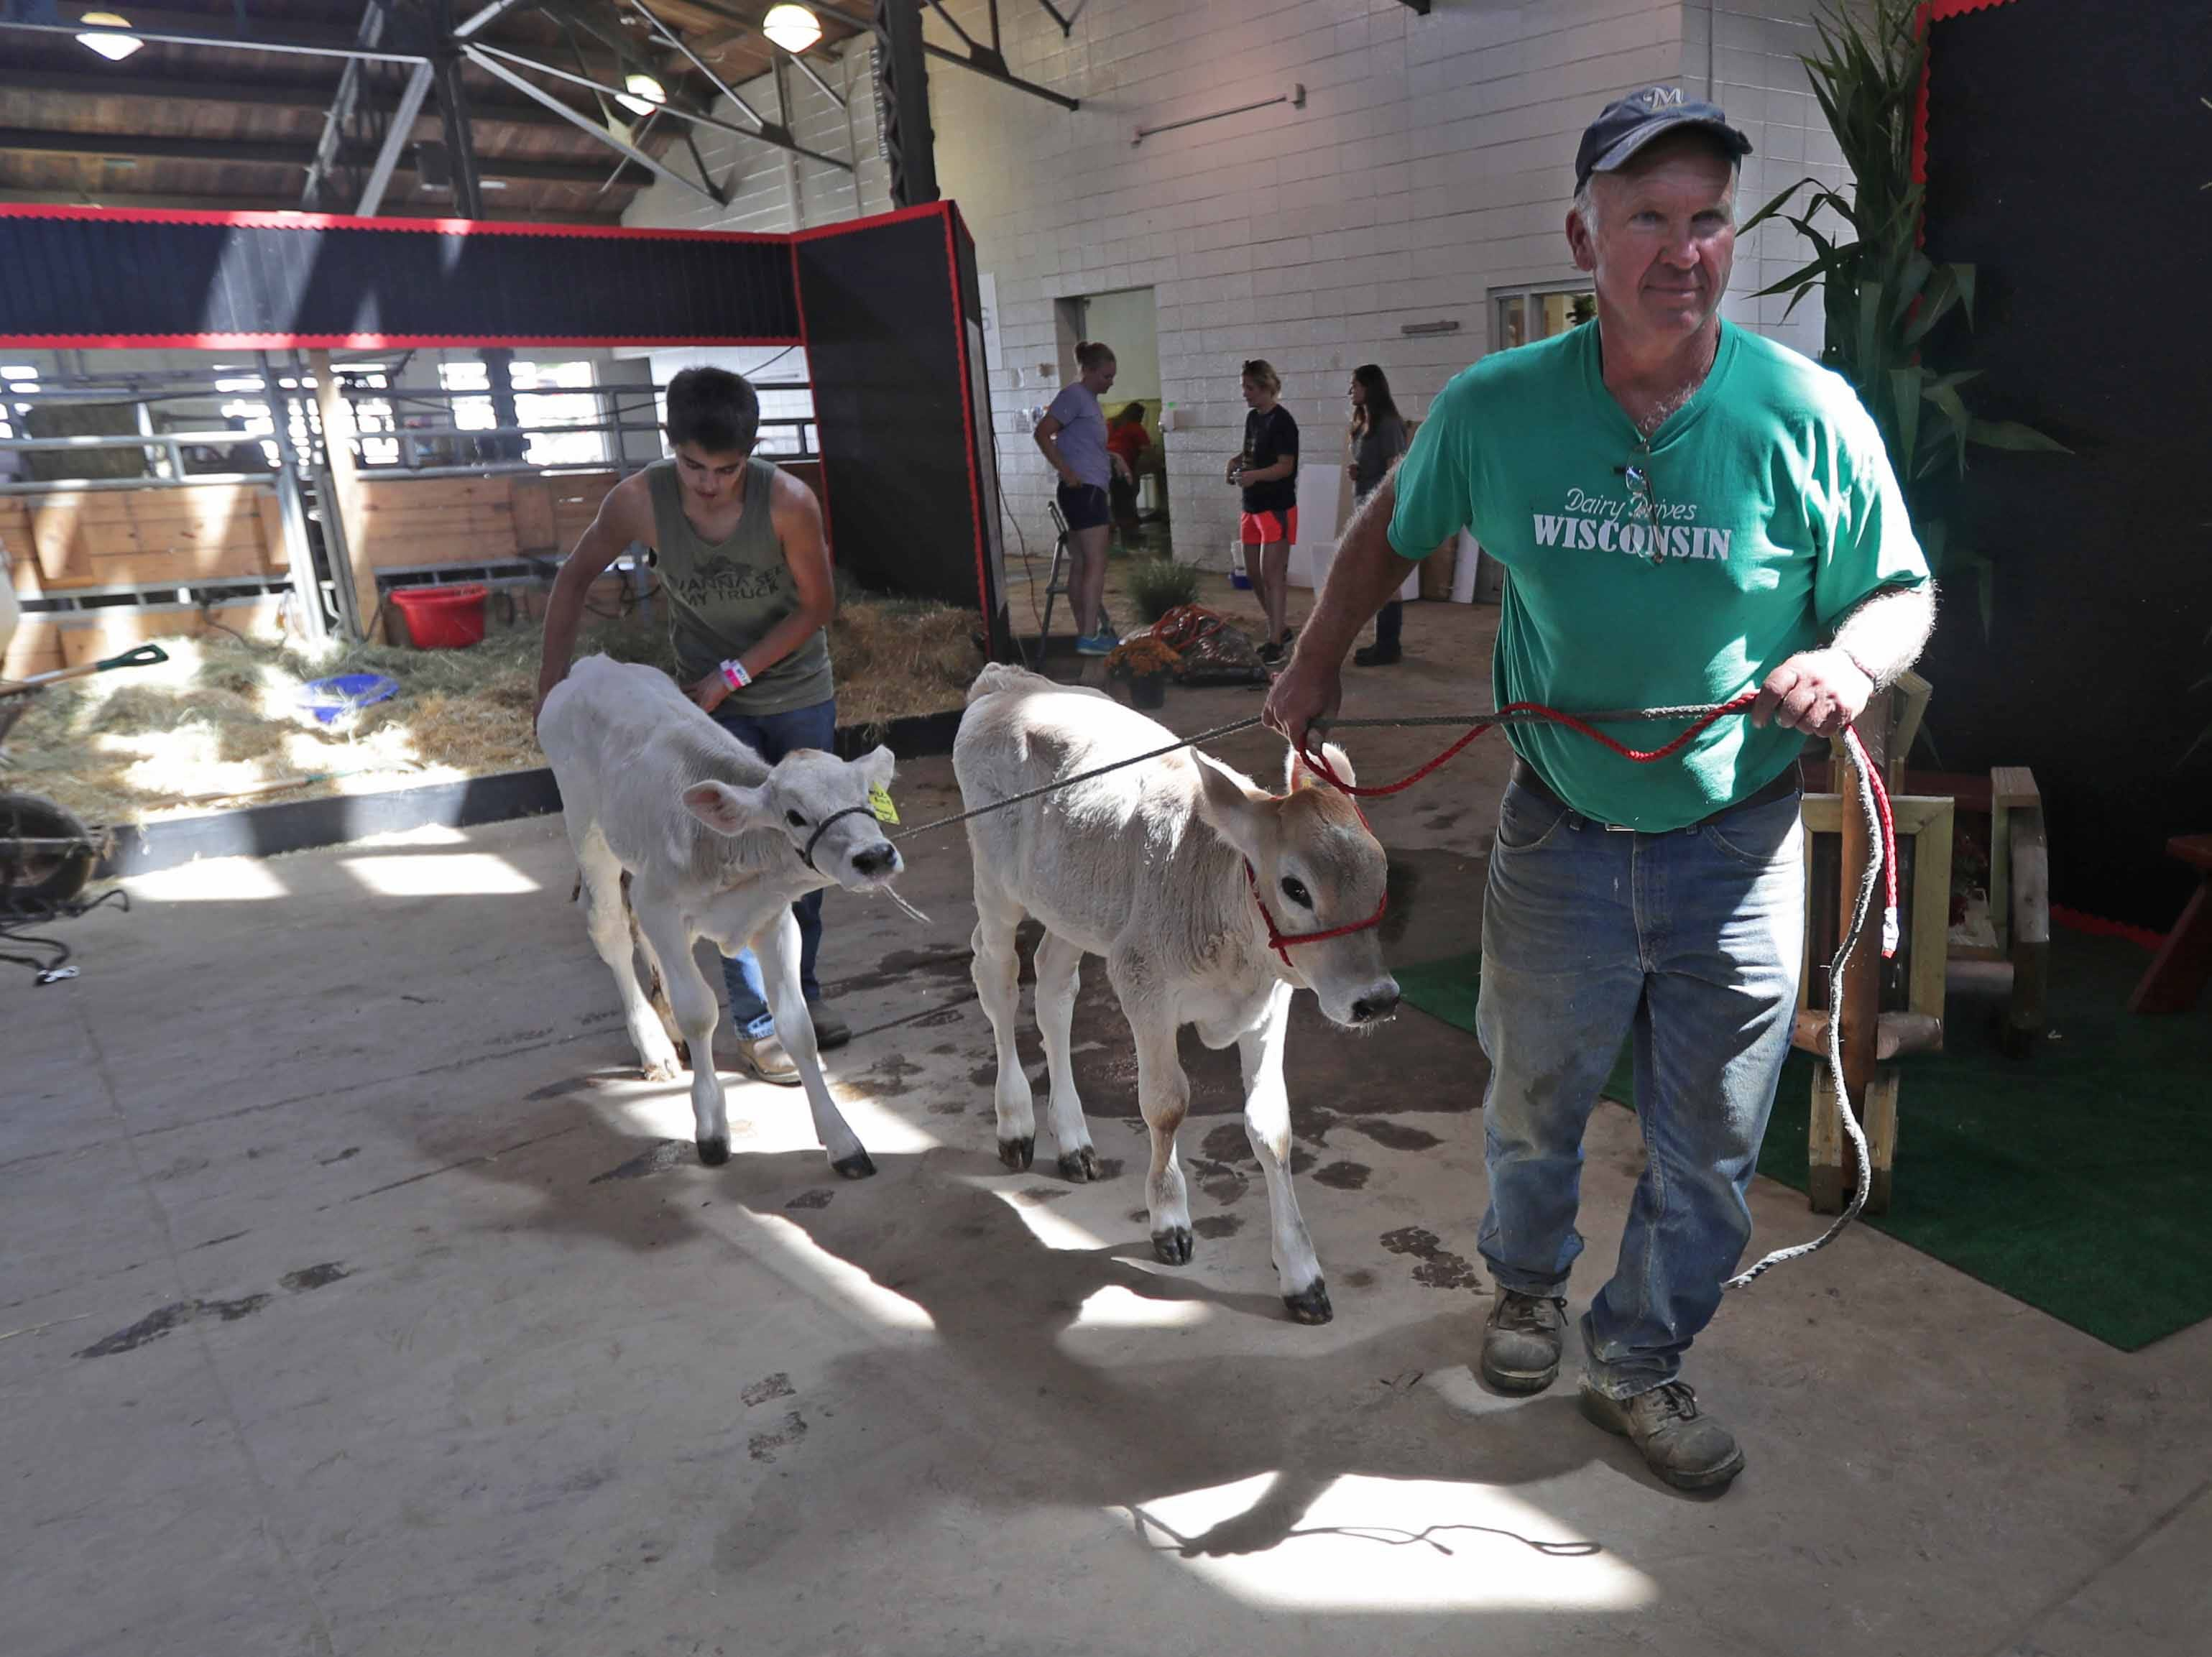 Tom Oberhaus (front), with Cozy Nook Farm out of Waukesha, and A.J. Wolfe, age 14, a Waukesha 4H member, walk with a couple of sister calfs to their corral inside the House of Moo, an interactive dairy education center.  Work was being done in preparation for the opening of the Wisconsin State Fair at State Fair Park on Wednesday, August 1, 2018. The fair, in West Allis, runs from Thursday, August 2 to Sunday, August 12. -  Photo by Mike De Sisti / Milwaukee Journal Sentinel